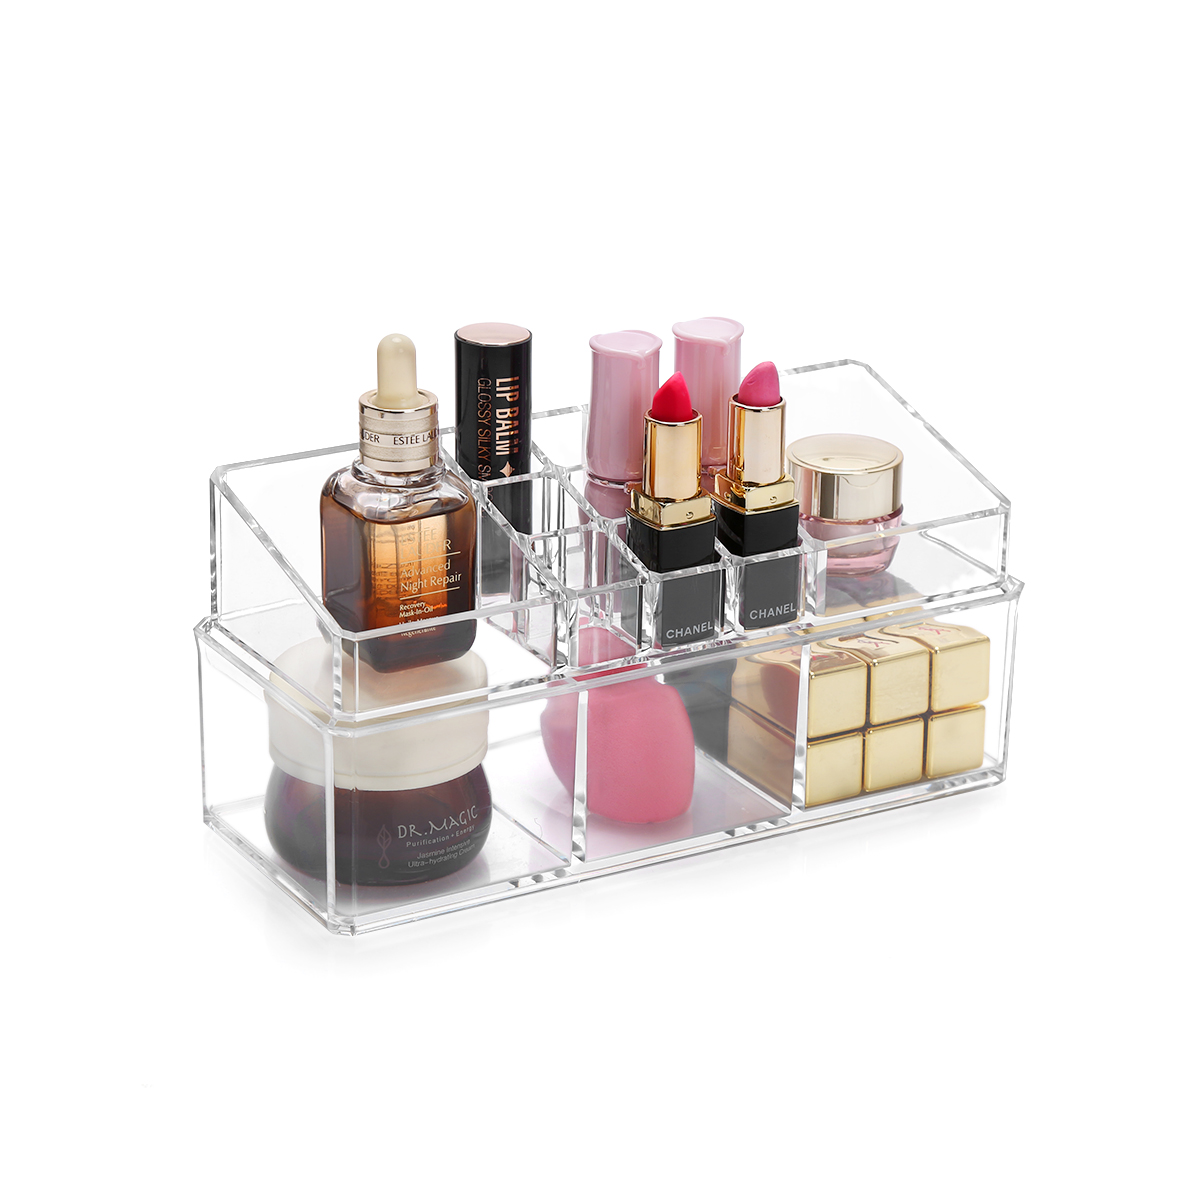 Transparent Lipstick Storage Box Cosmetic Makeup Organizer Acylic Lipstick  Holder Display Stand Home Storage Container C140 In Storage Boxes U0026 Bins  From ...